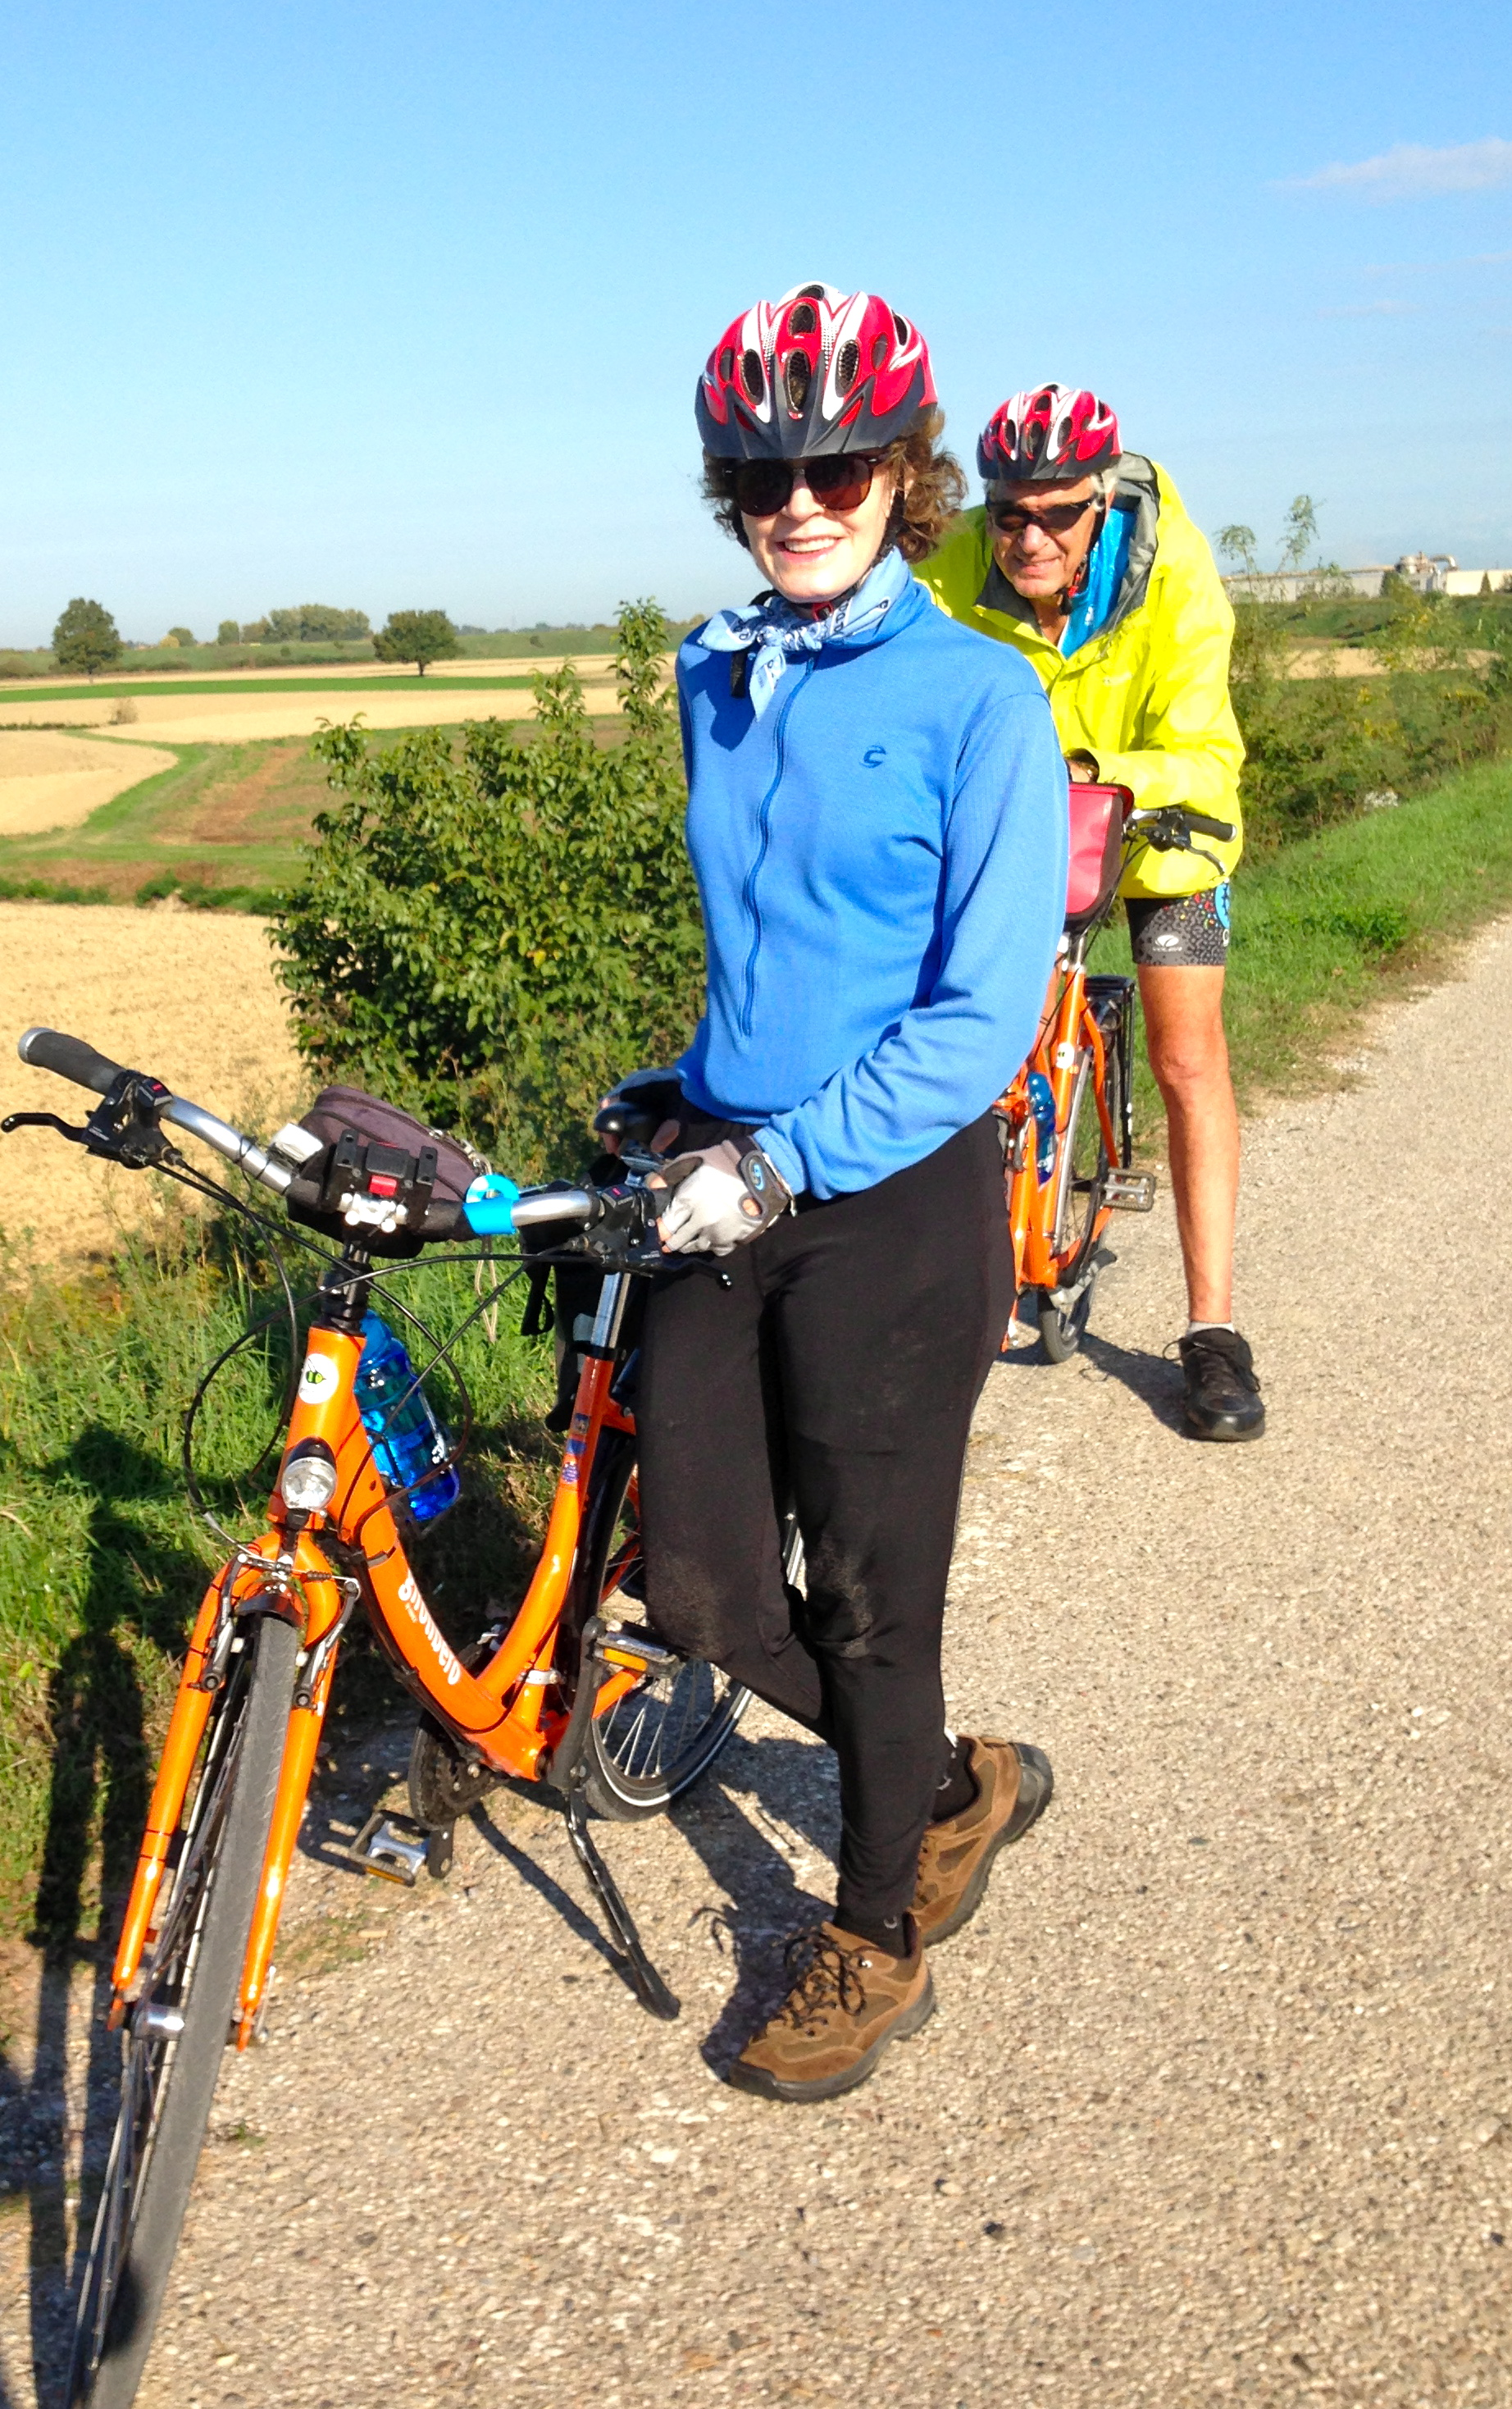 Bicycling in Europe - The 2 Seasons